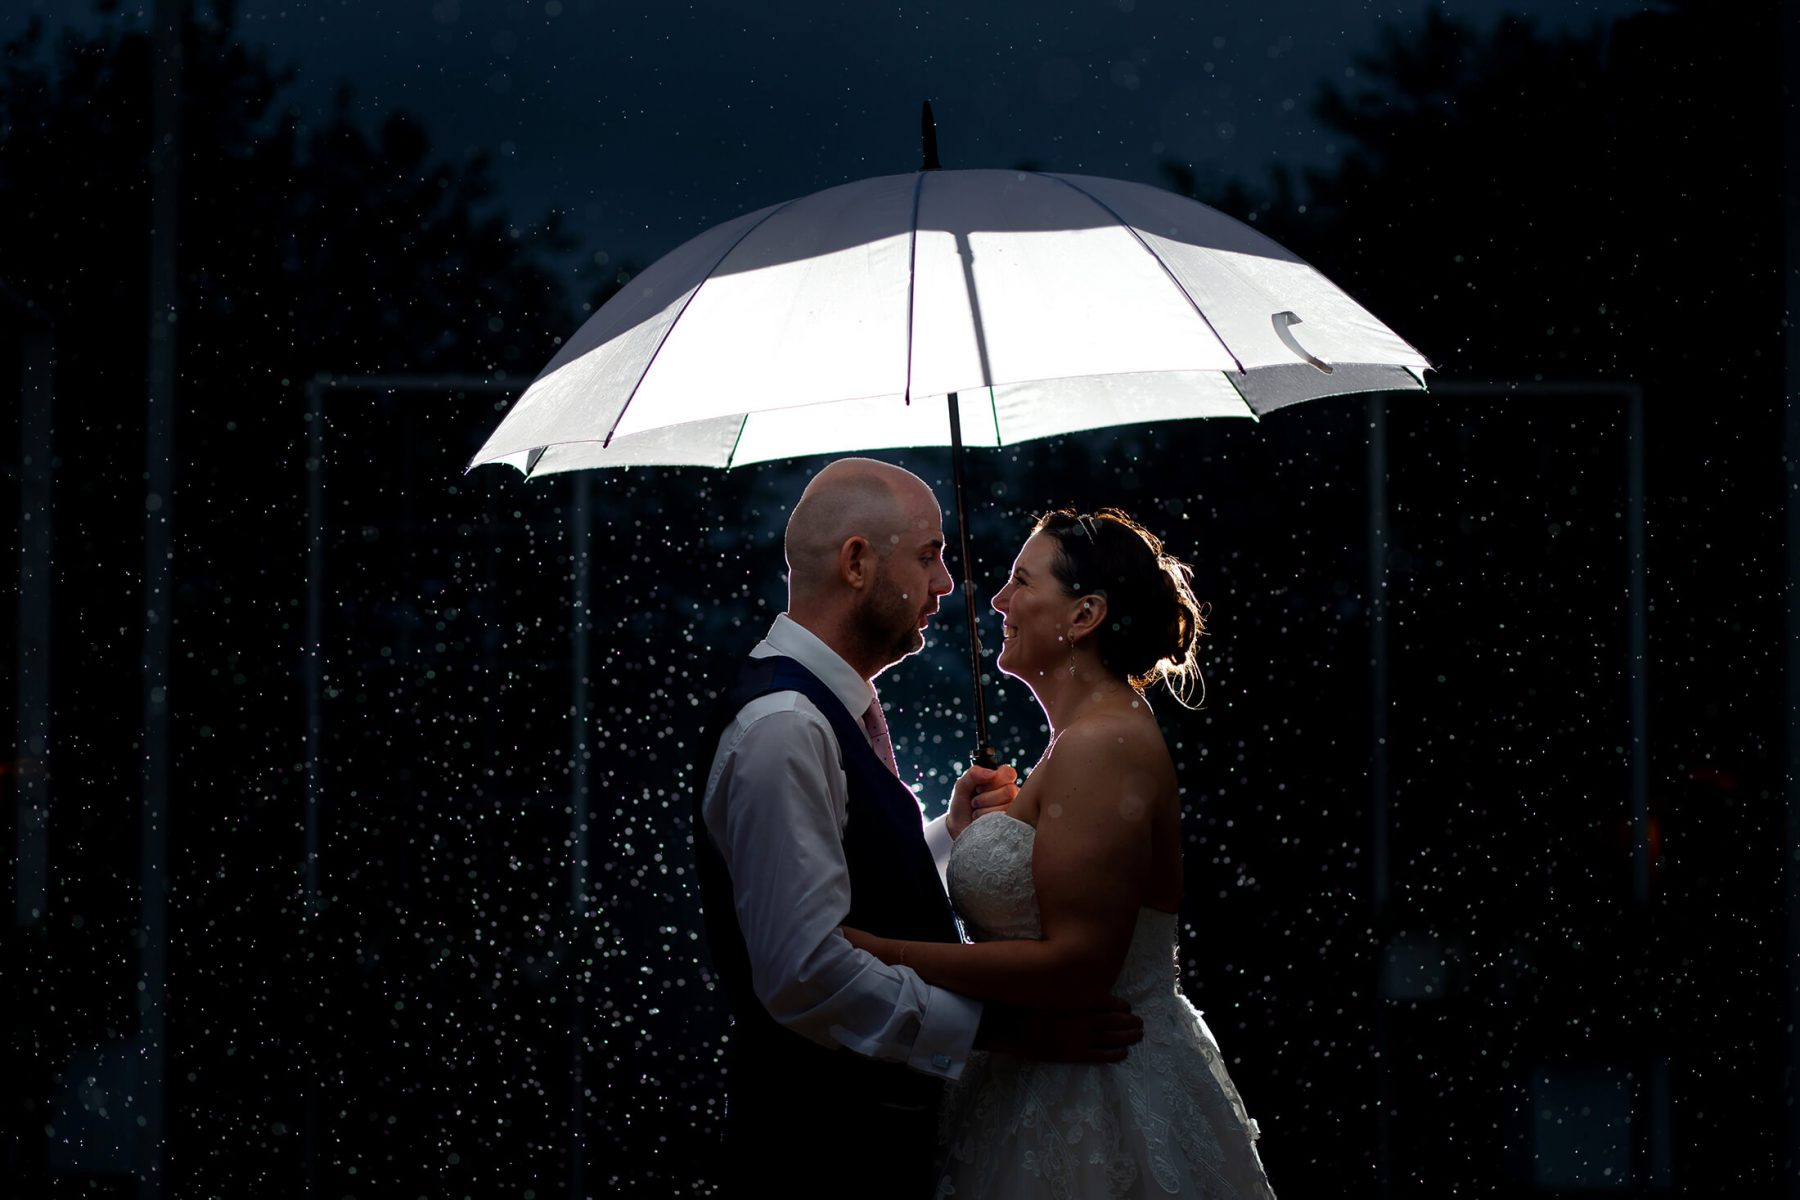 The bride and groom beneath an umbrella in the rain